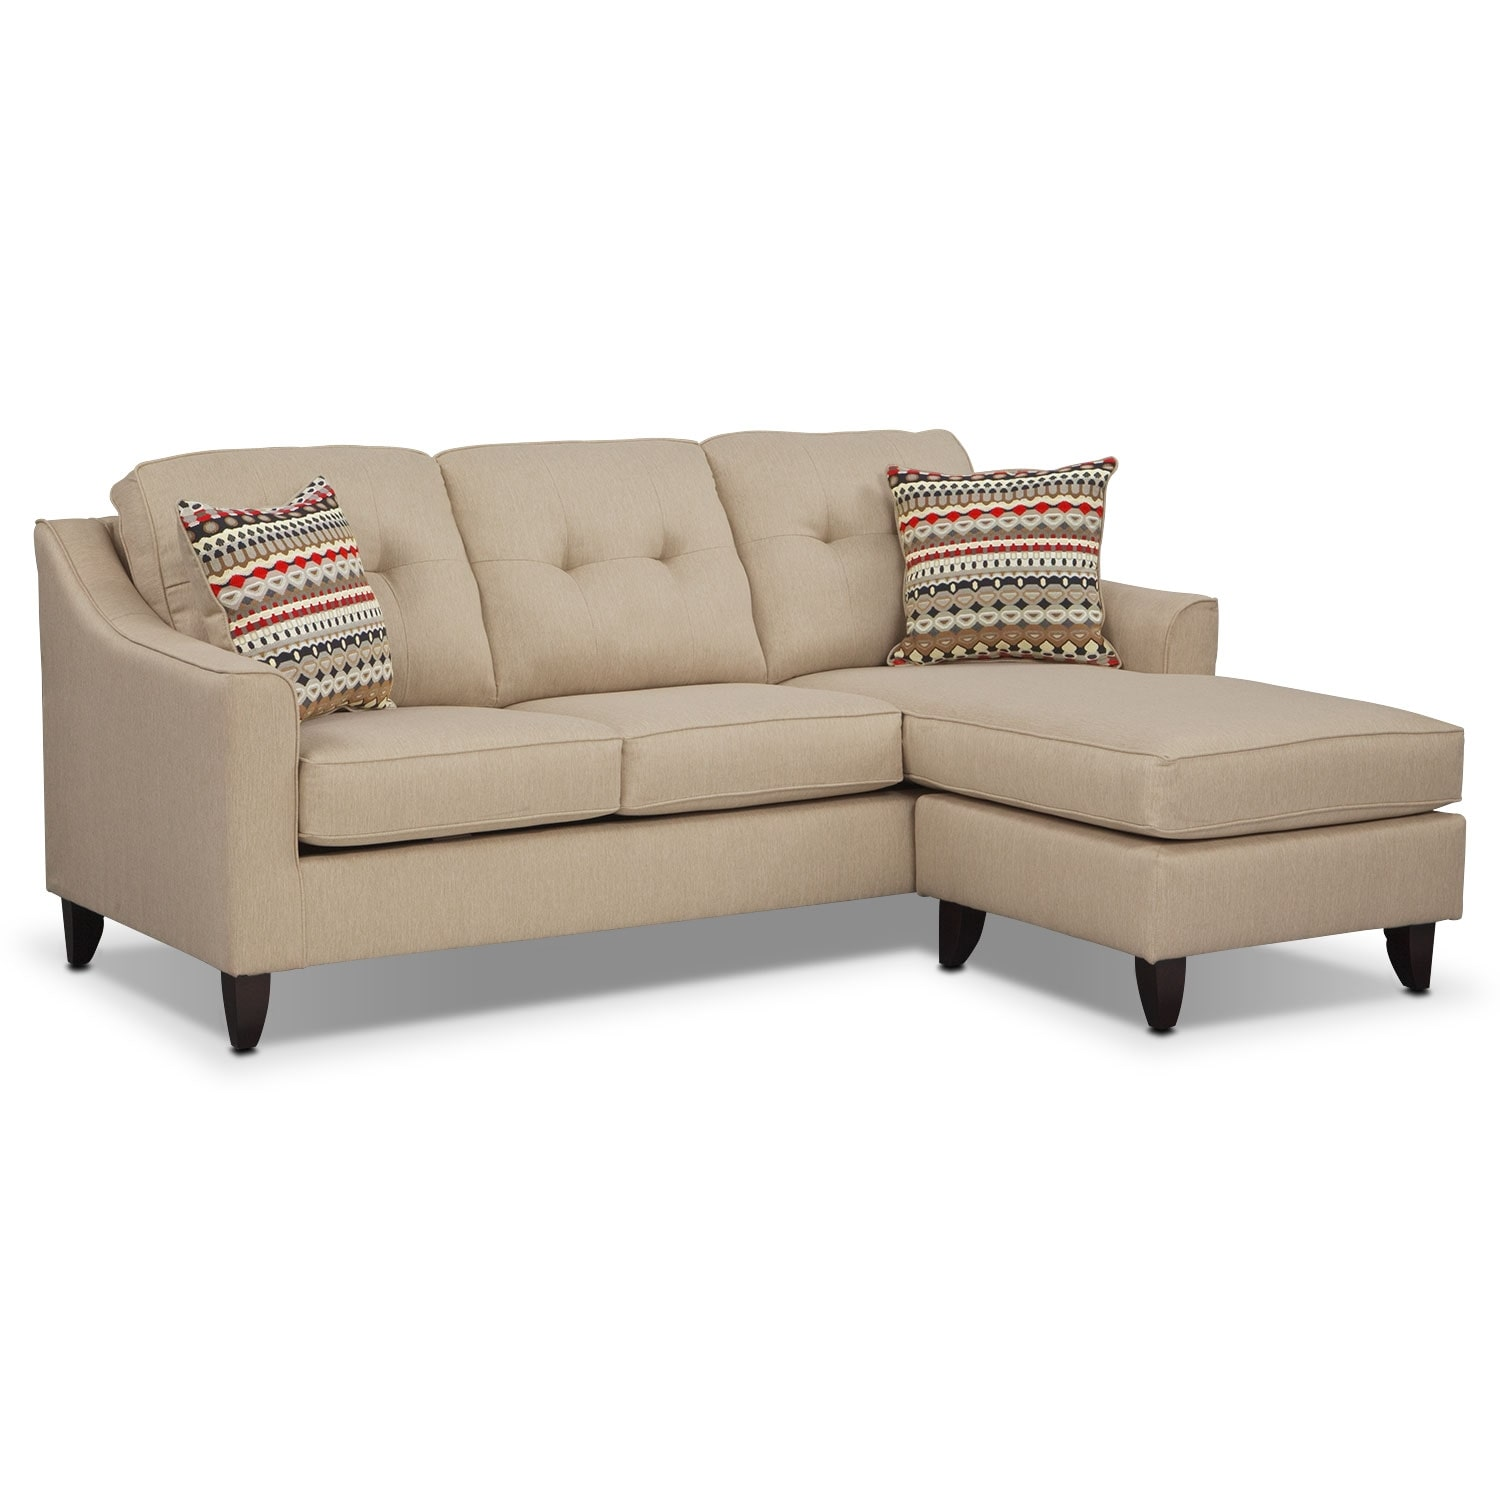 Living Room Furniture - Marco Cream Chaise Sofa